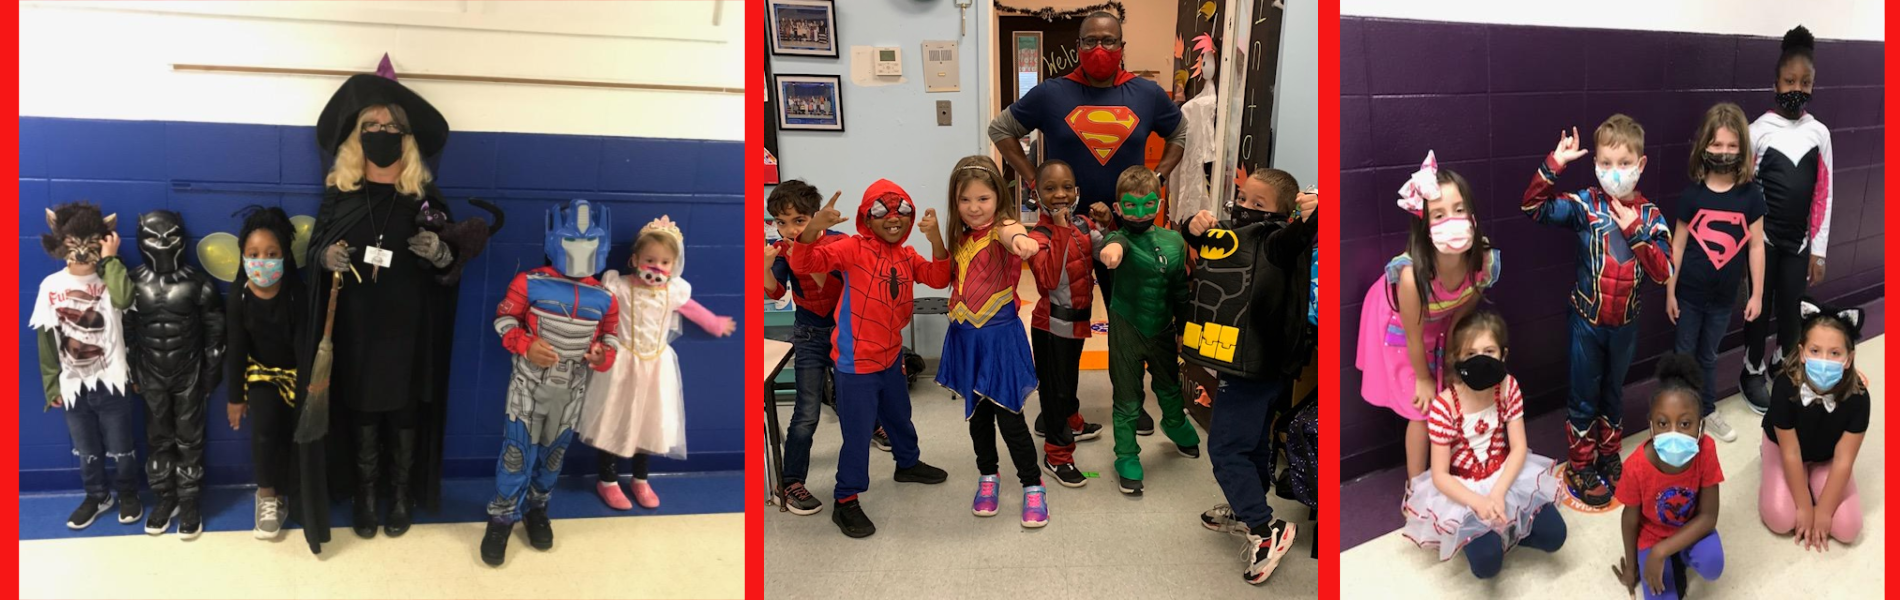 Students dresses in costumes for Red Ribbon Week